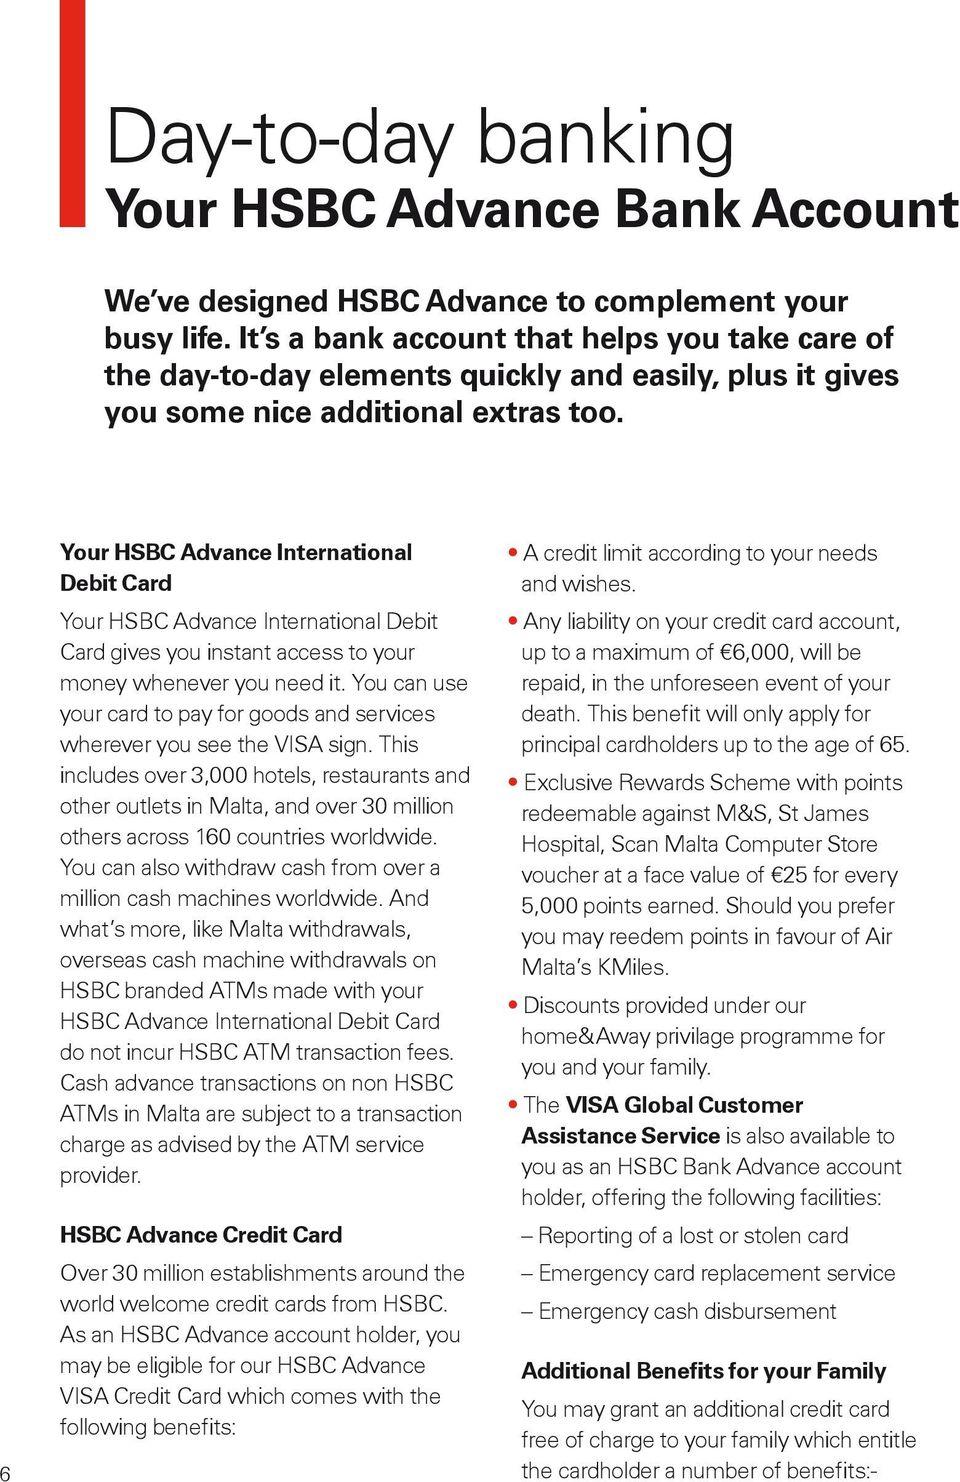 Introducing HSBC Advance Banking that puts you a step ahead